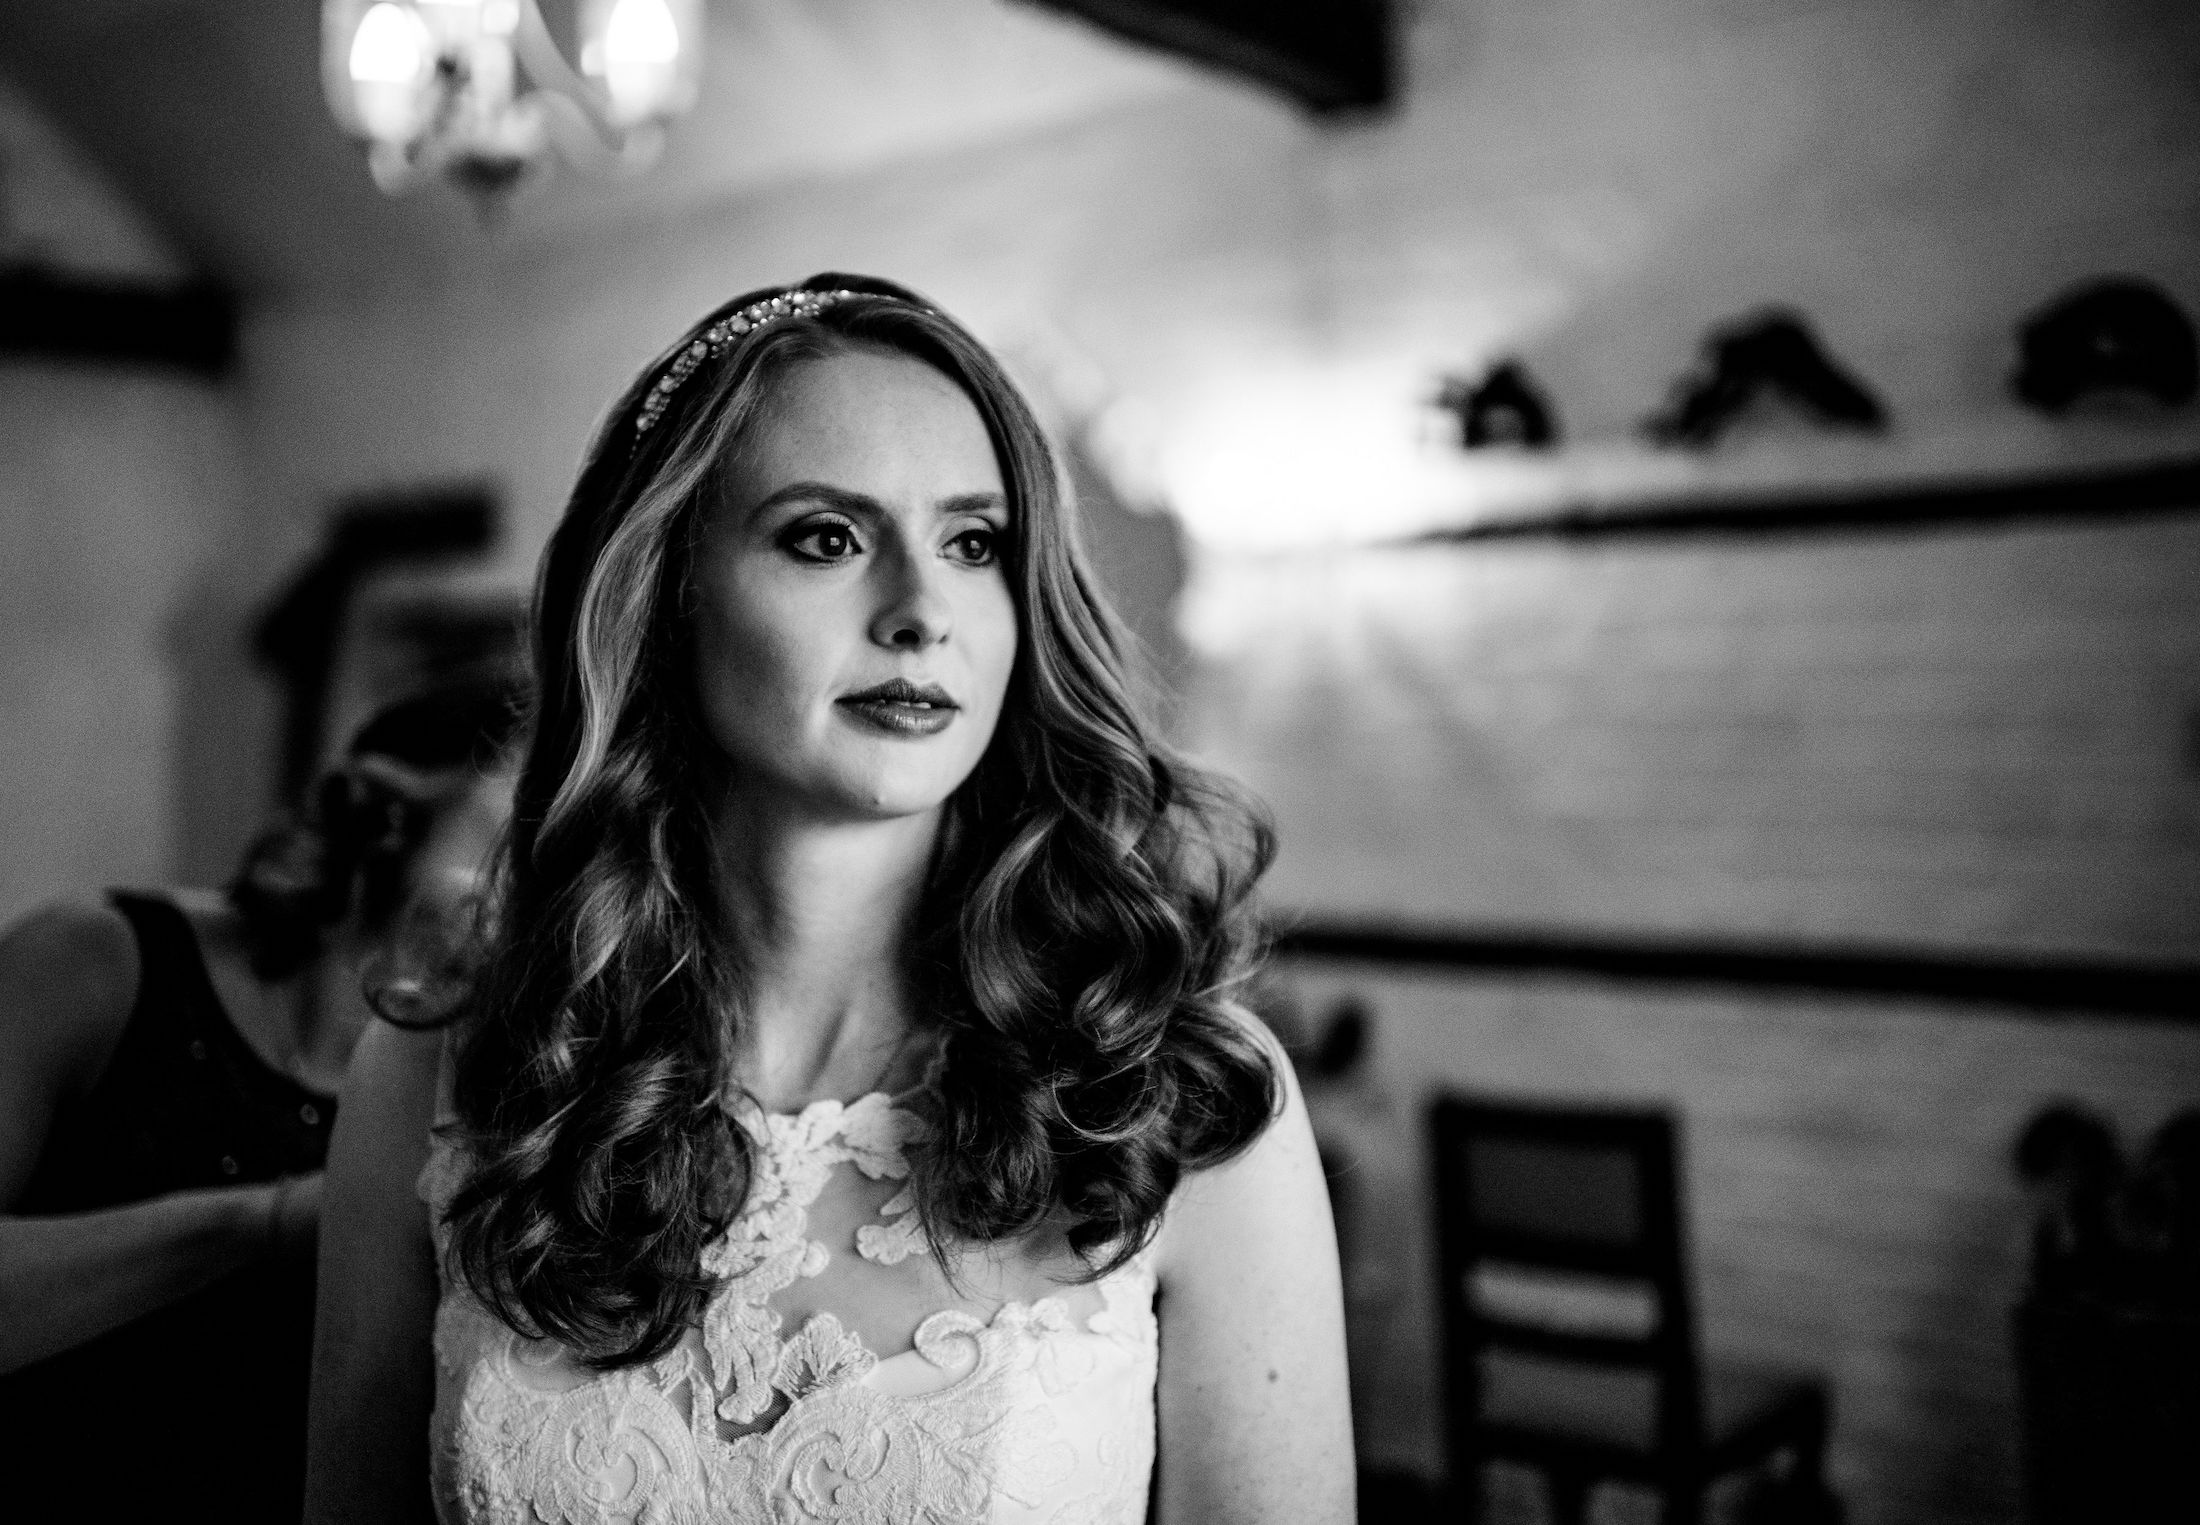 0 Lillibrooke Manor Bride Wedding Photography Black and White.jpg